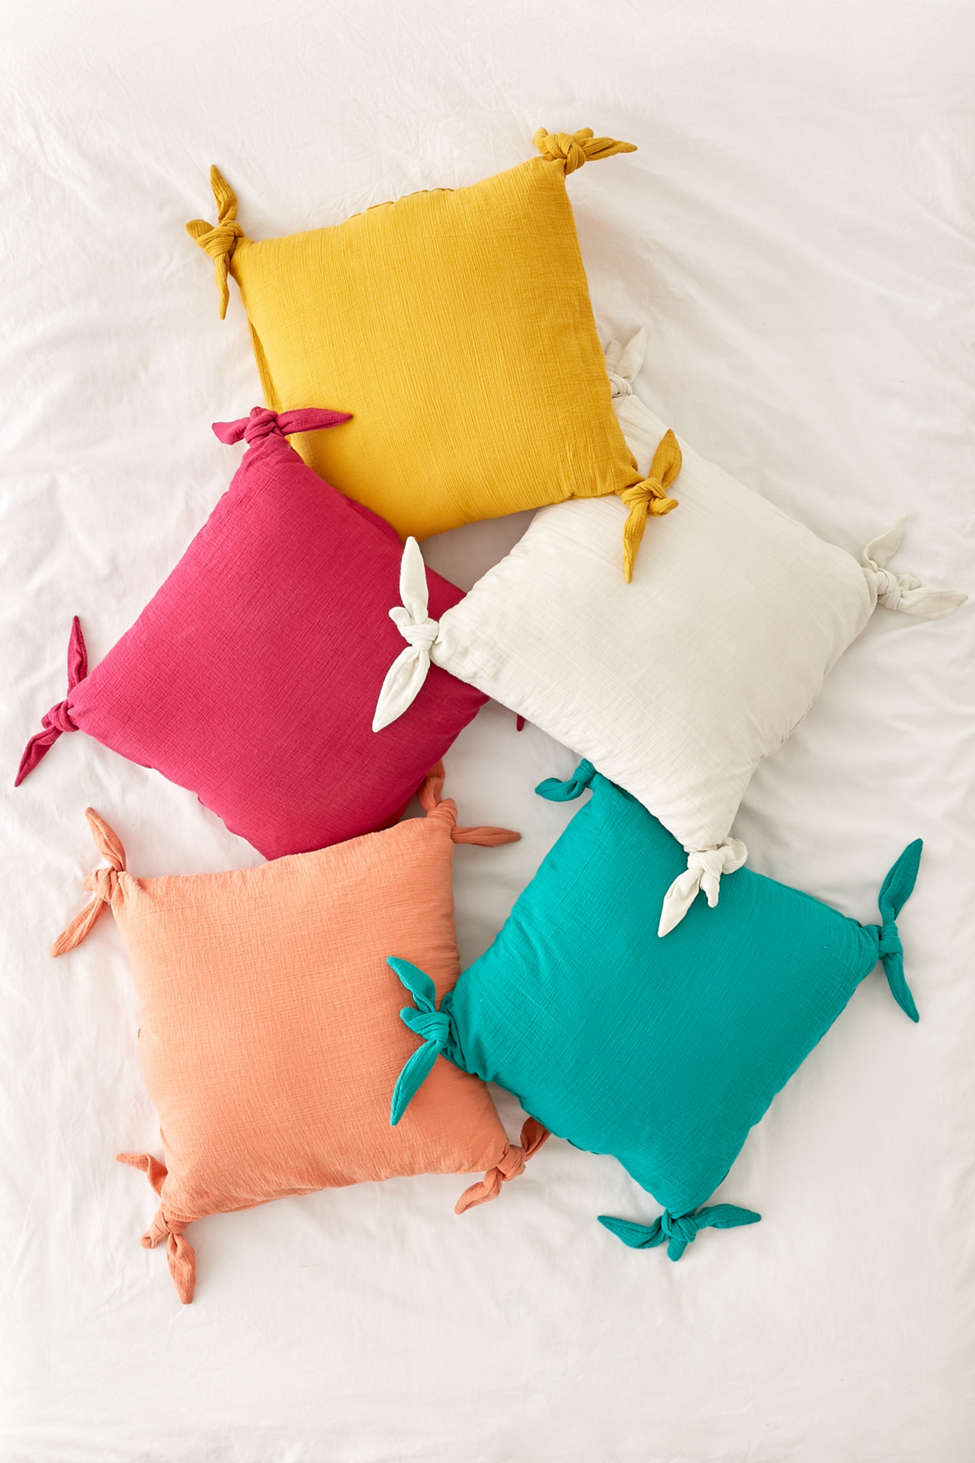 Slide View: 4: Knotted Ties Throw Pillow